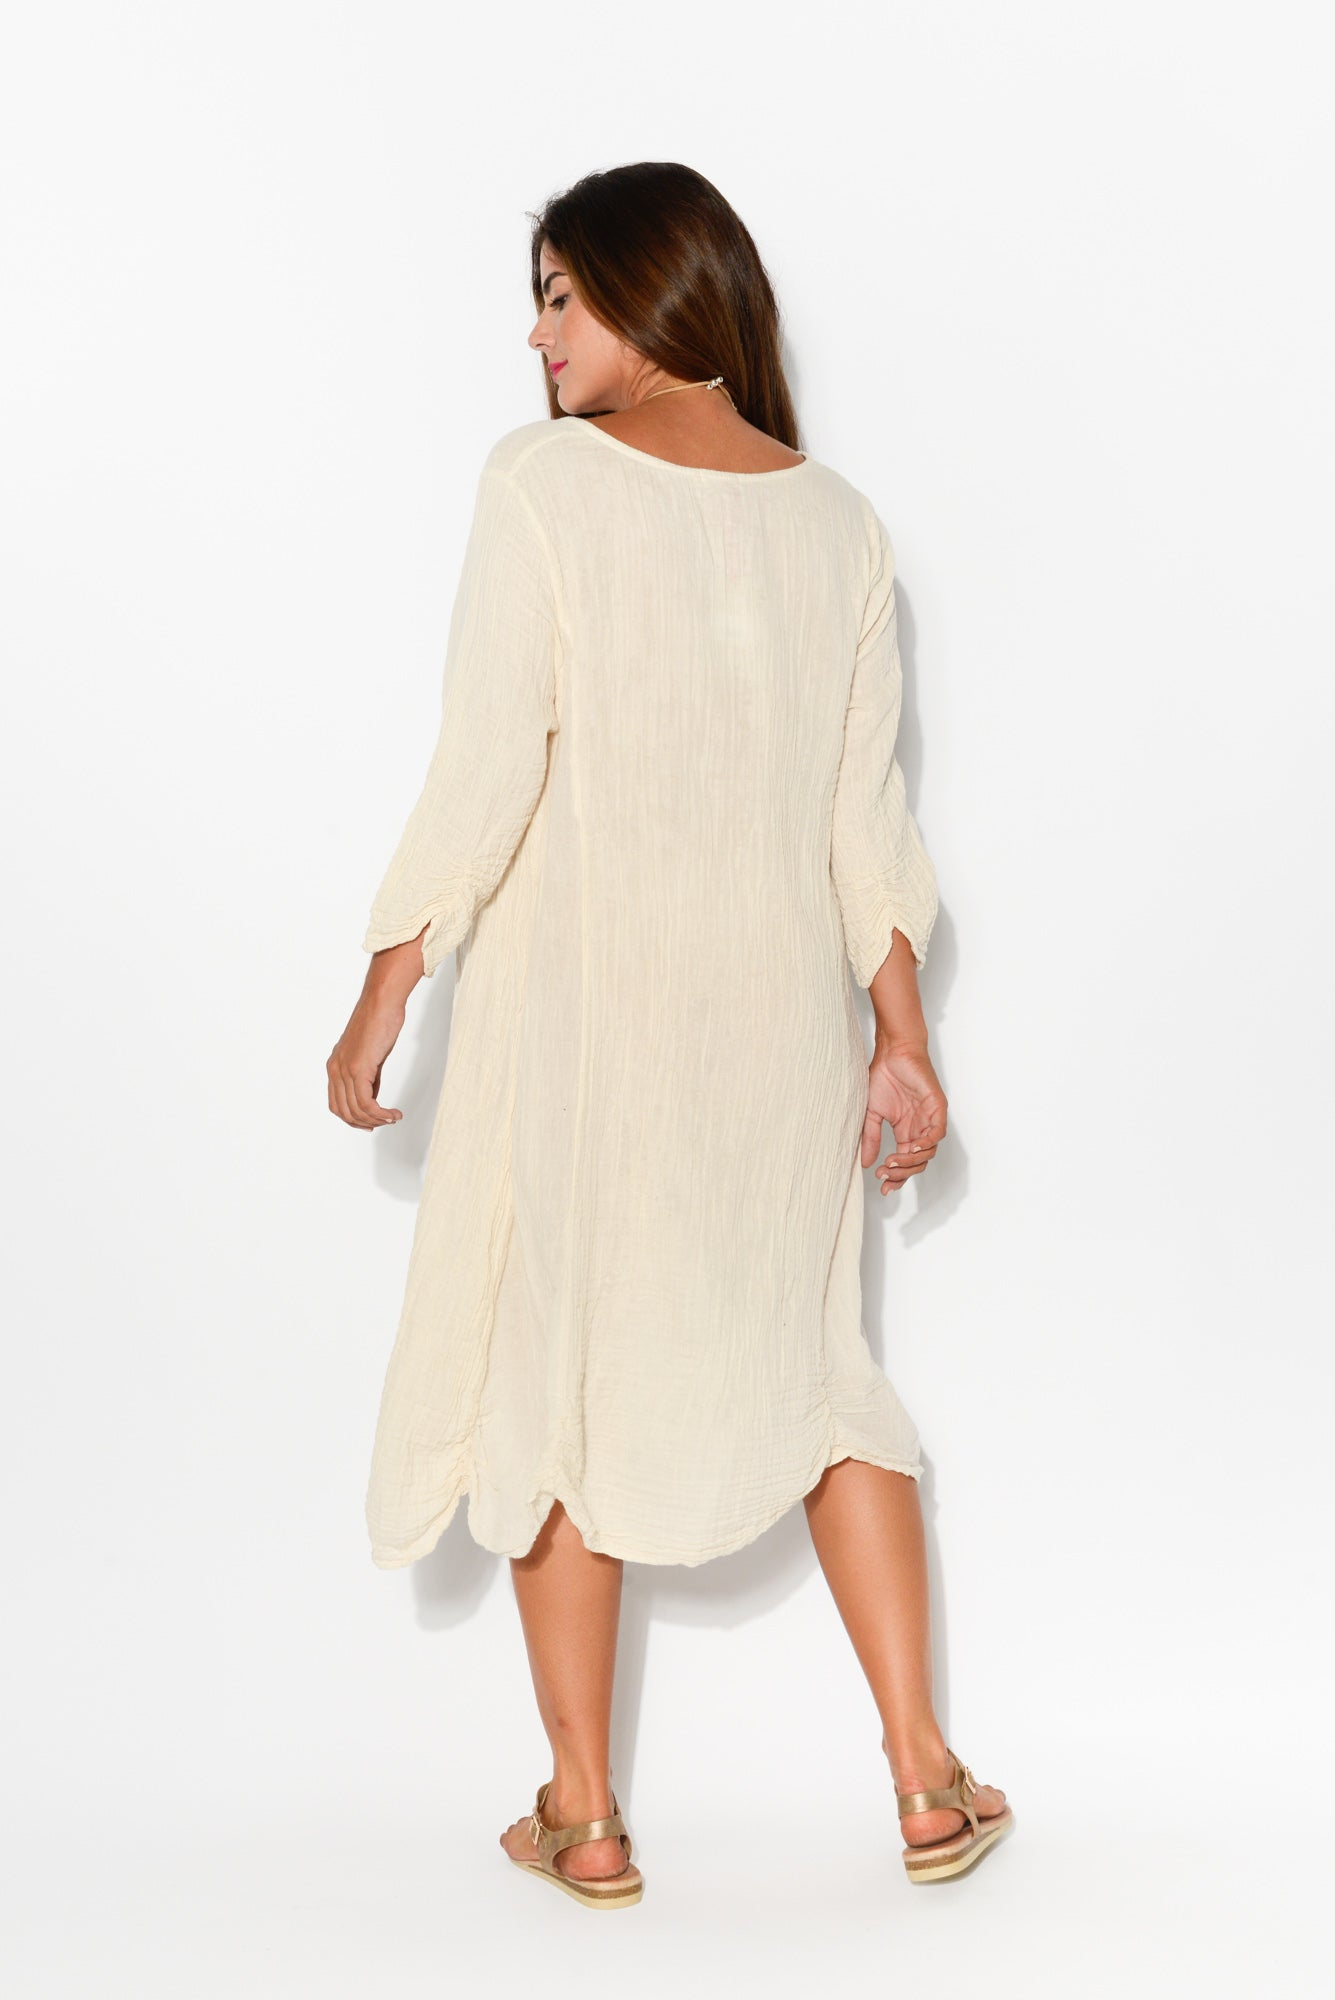 Eden Natural Sleeved Crinkle Cotton Dress - Blue Bungalow